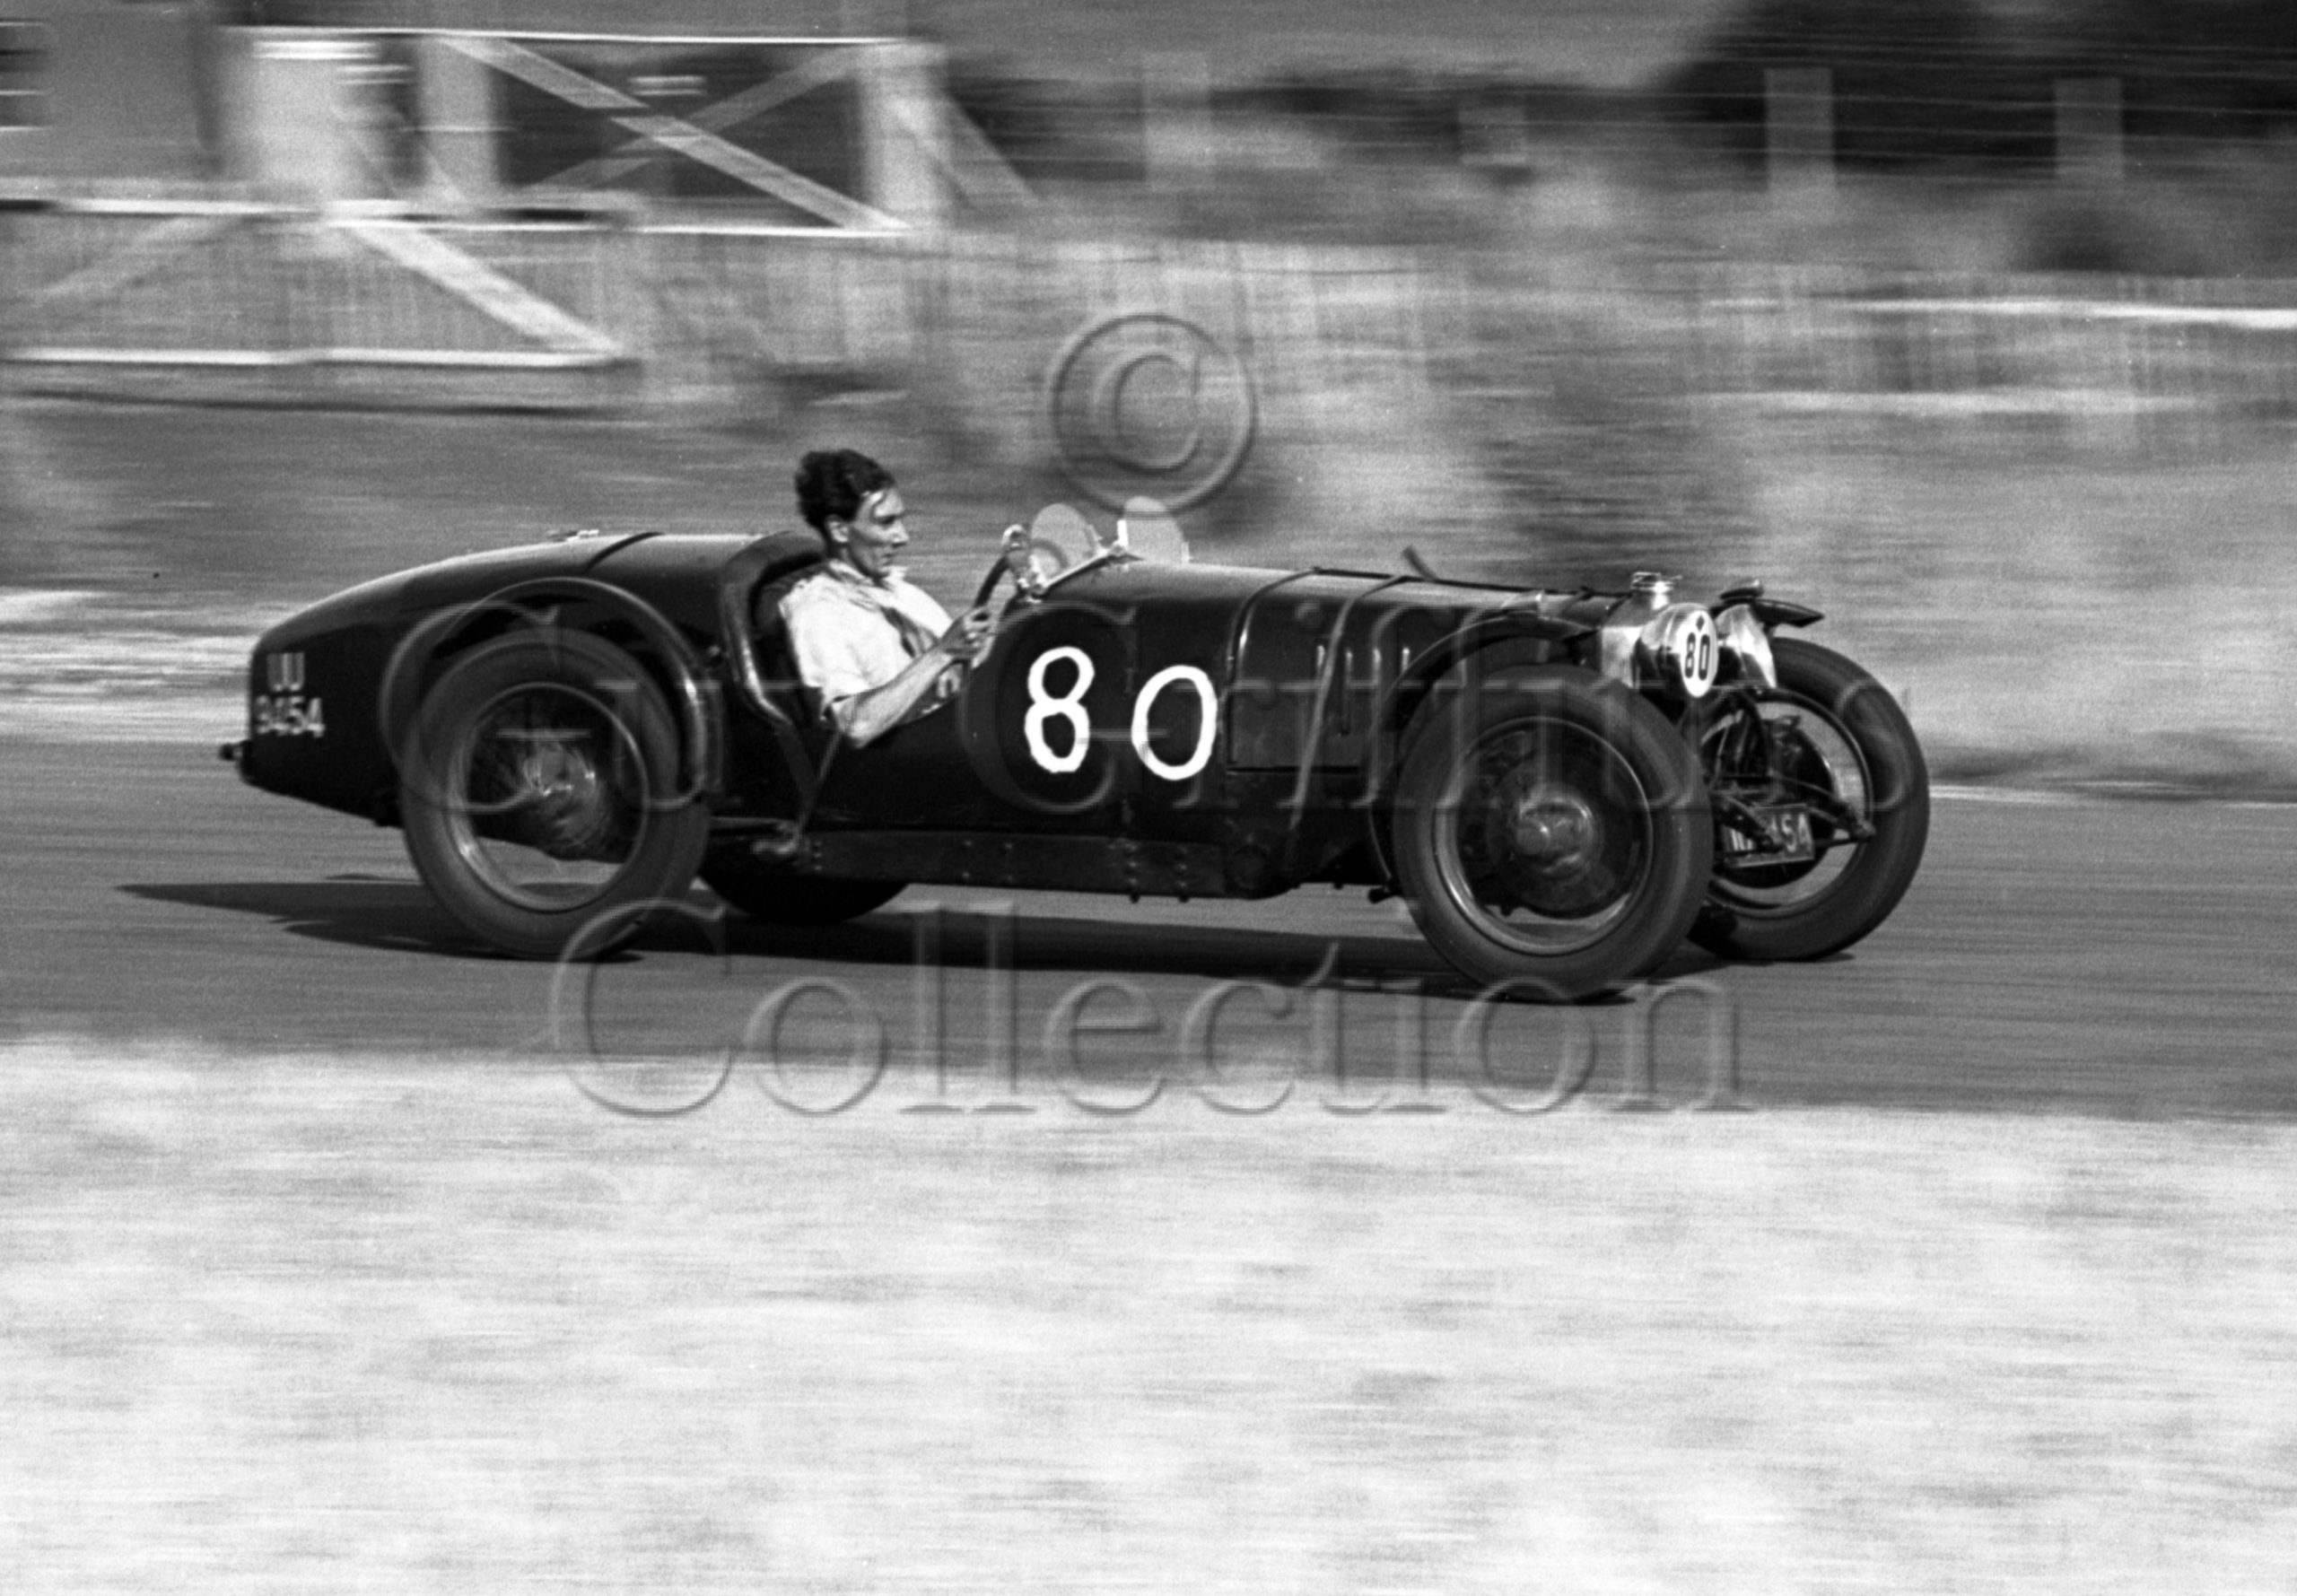 20-712–P-M-W-Kingston–Riley–Goodwood–13-08-1949.jpg - Guy Griffiths Collection